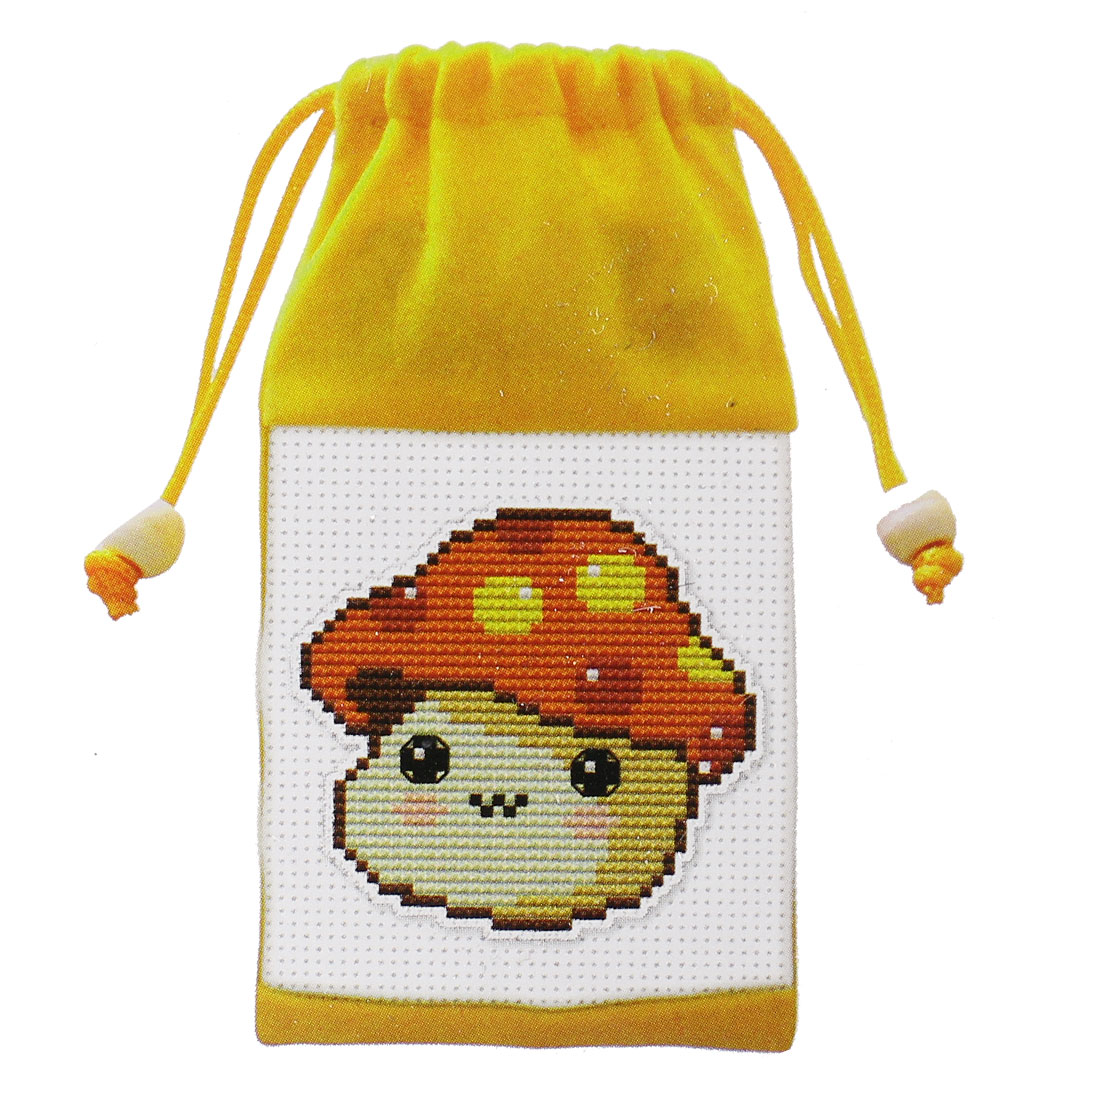 Mushroom Head Pattern Cross Stitch Counted Handmade Kit Cell Phone Bag Pouch